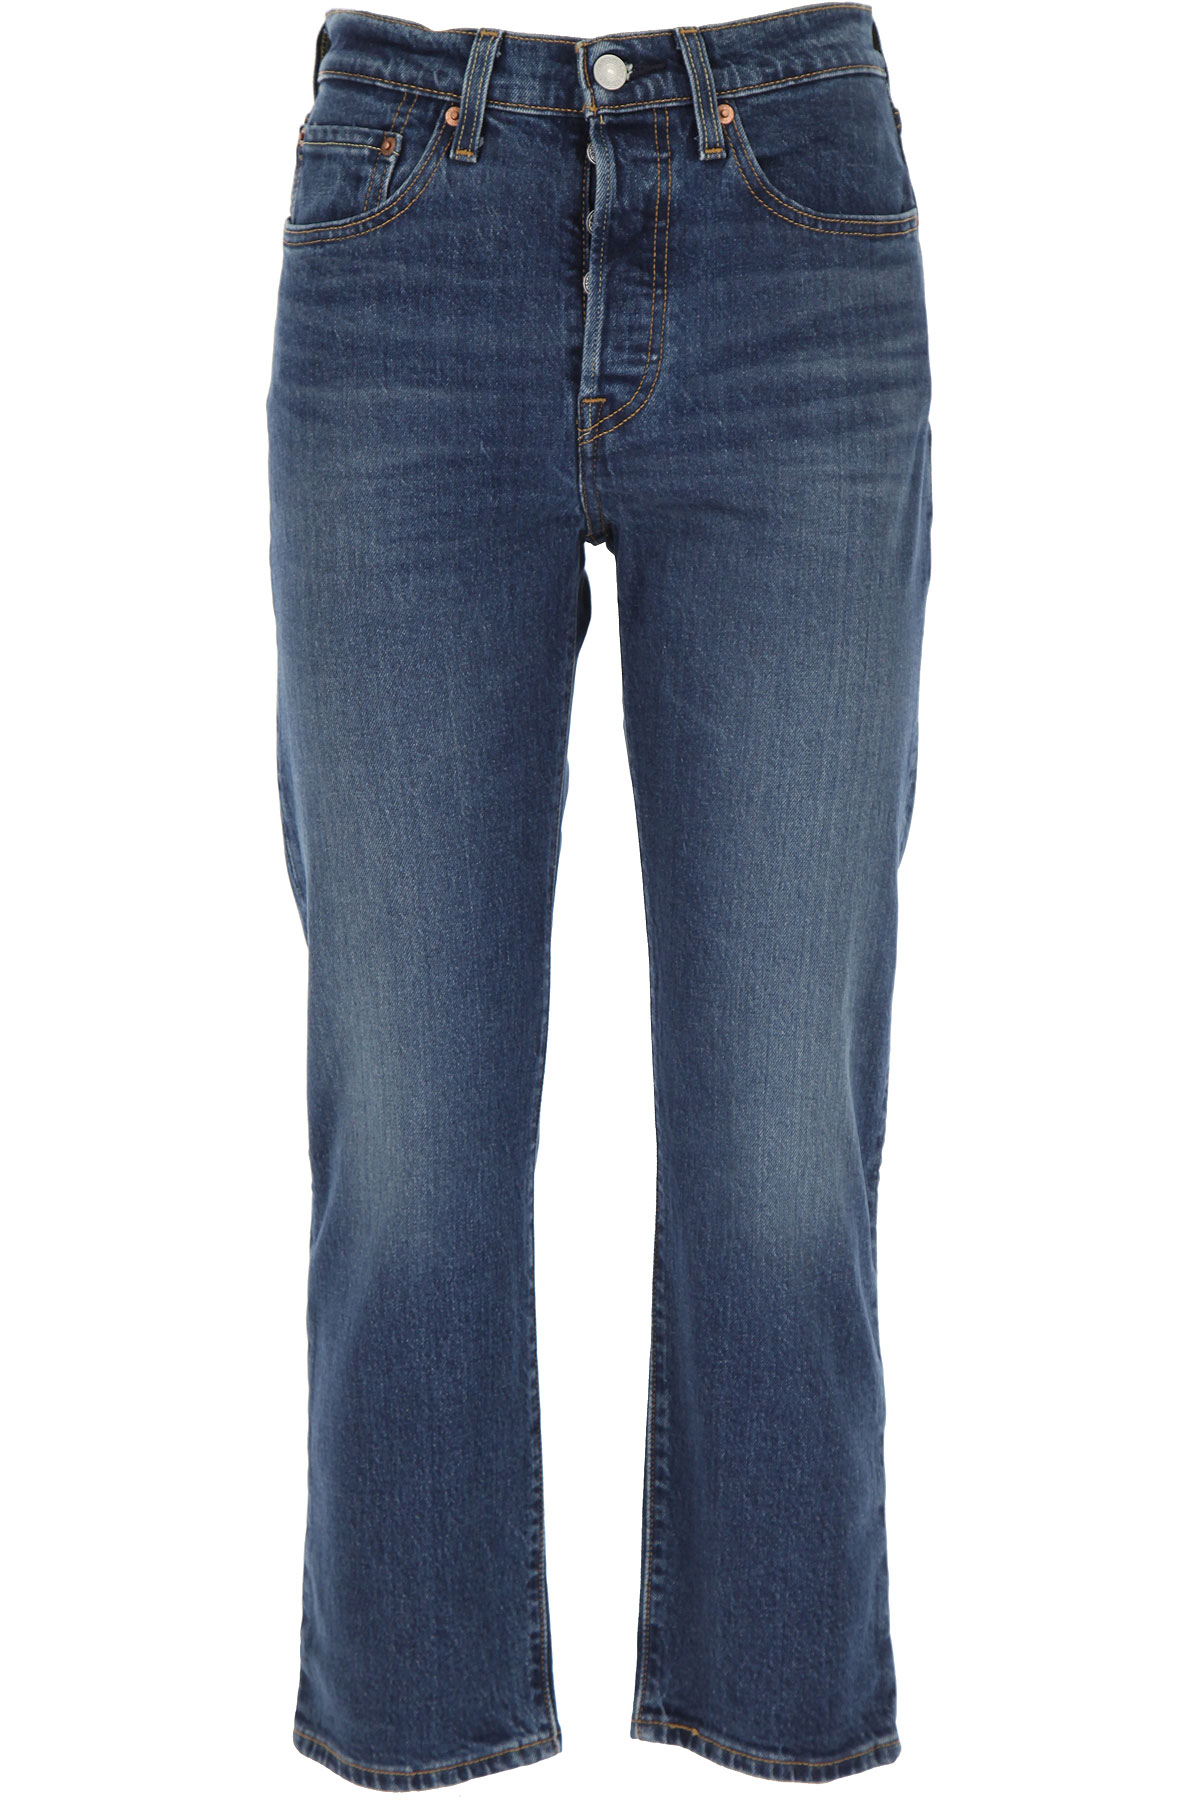 Levis Jeans On Sale, Denim, Cotton, 2019, 24 29